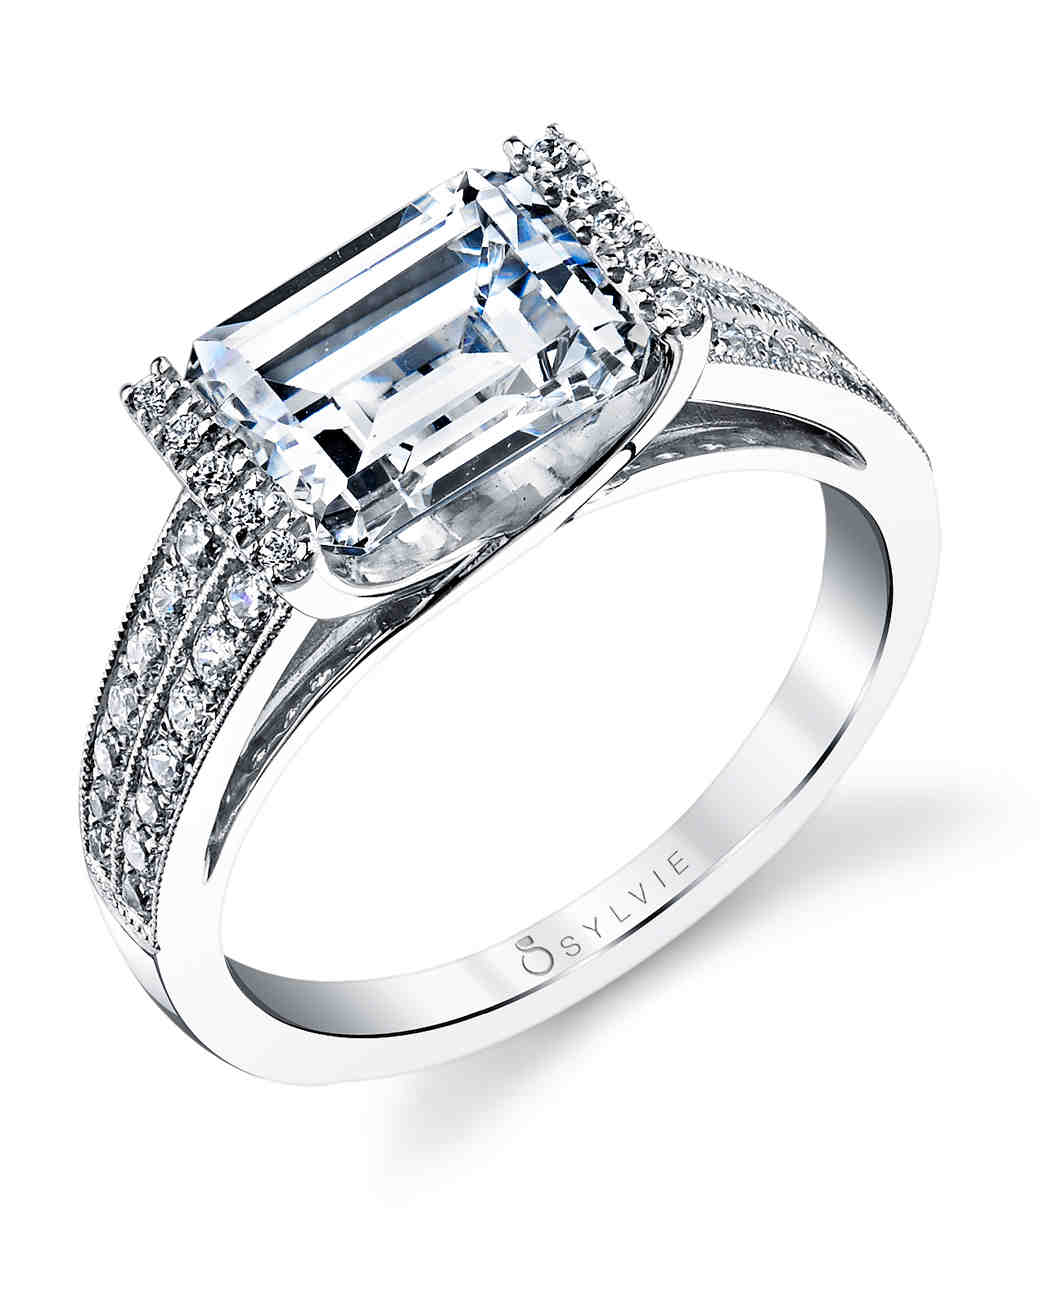 emerald cut diamond engagement rings emerald wedding rings Sylvie Collection Emerald Cut Engagement Ring